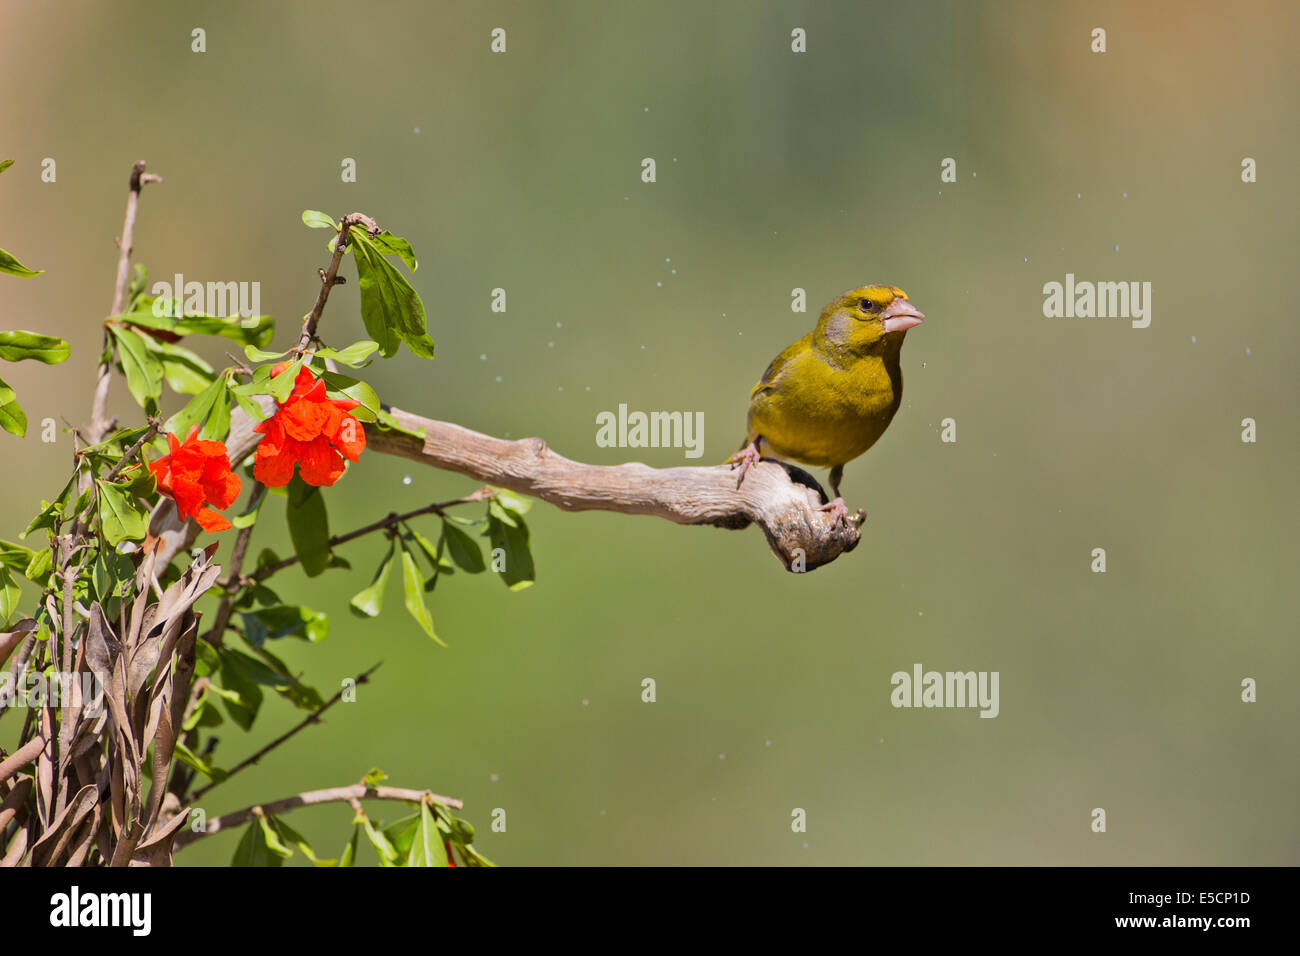 European Greenfinch (Carduelis chloris)  a small passerine bird in the finch family Fringillidae. Photographed near - Stock Image